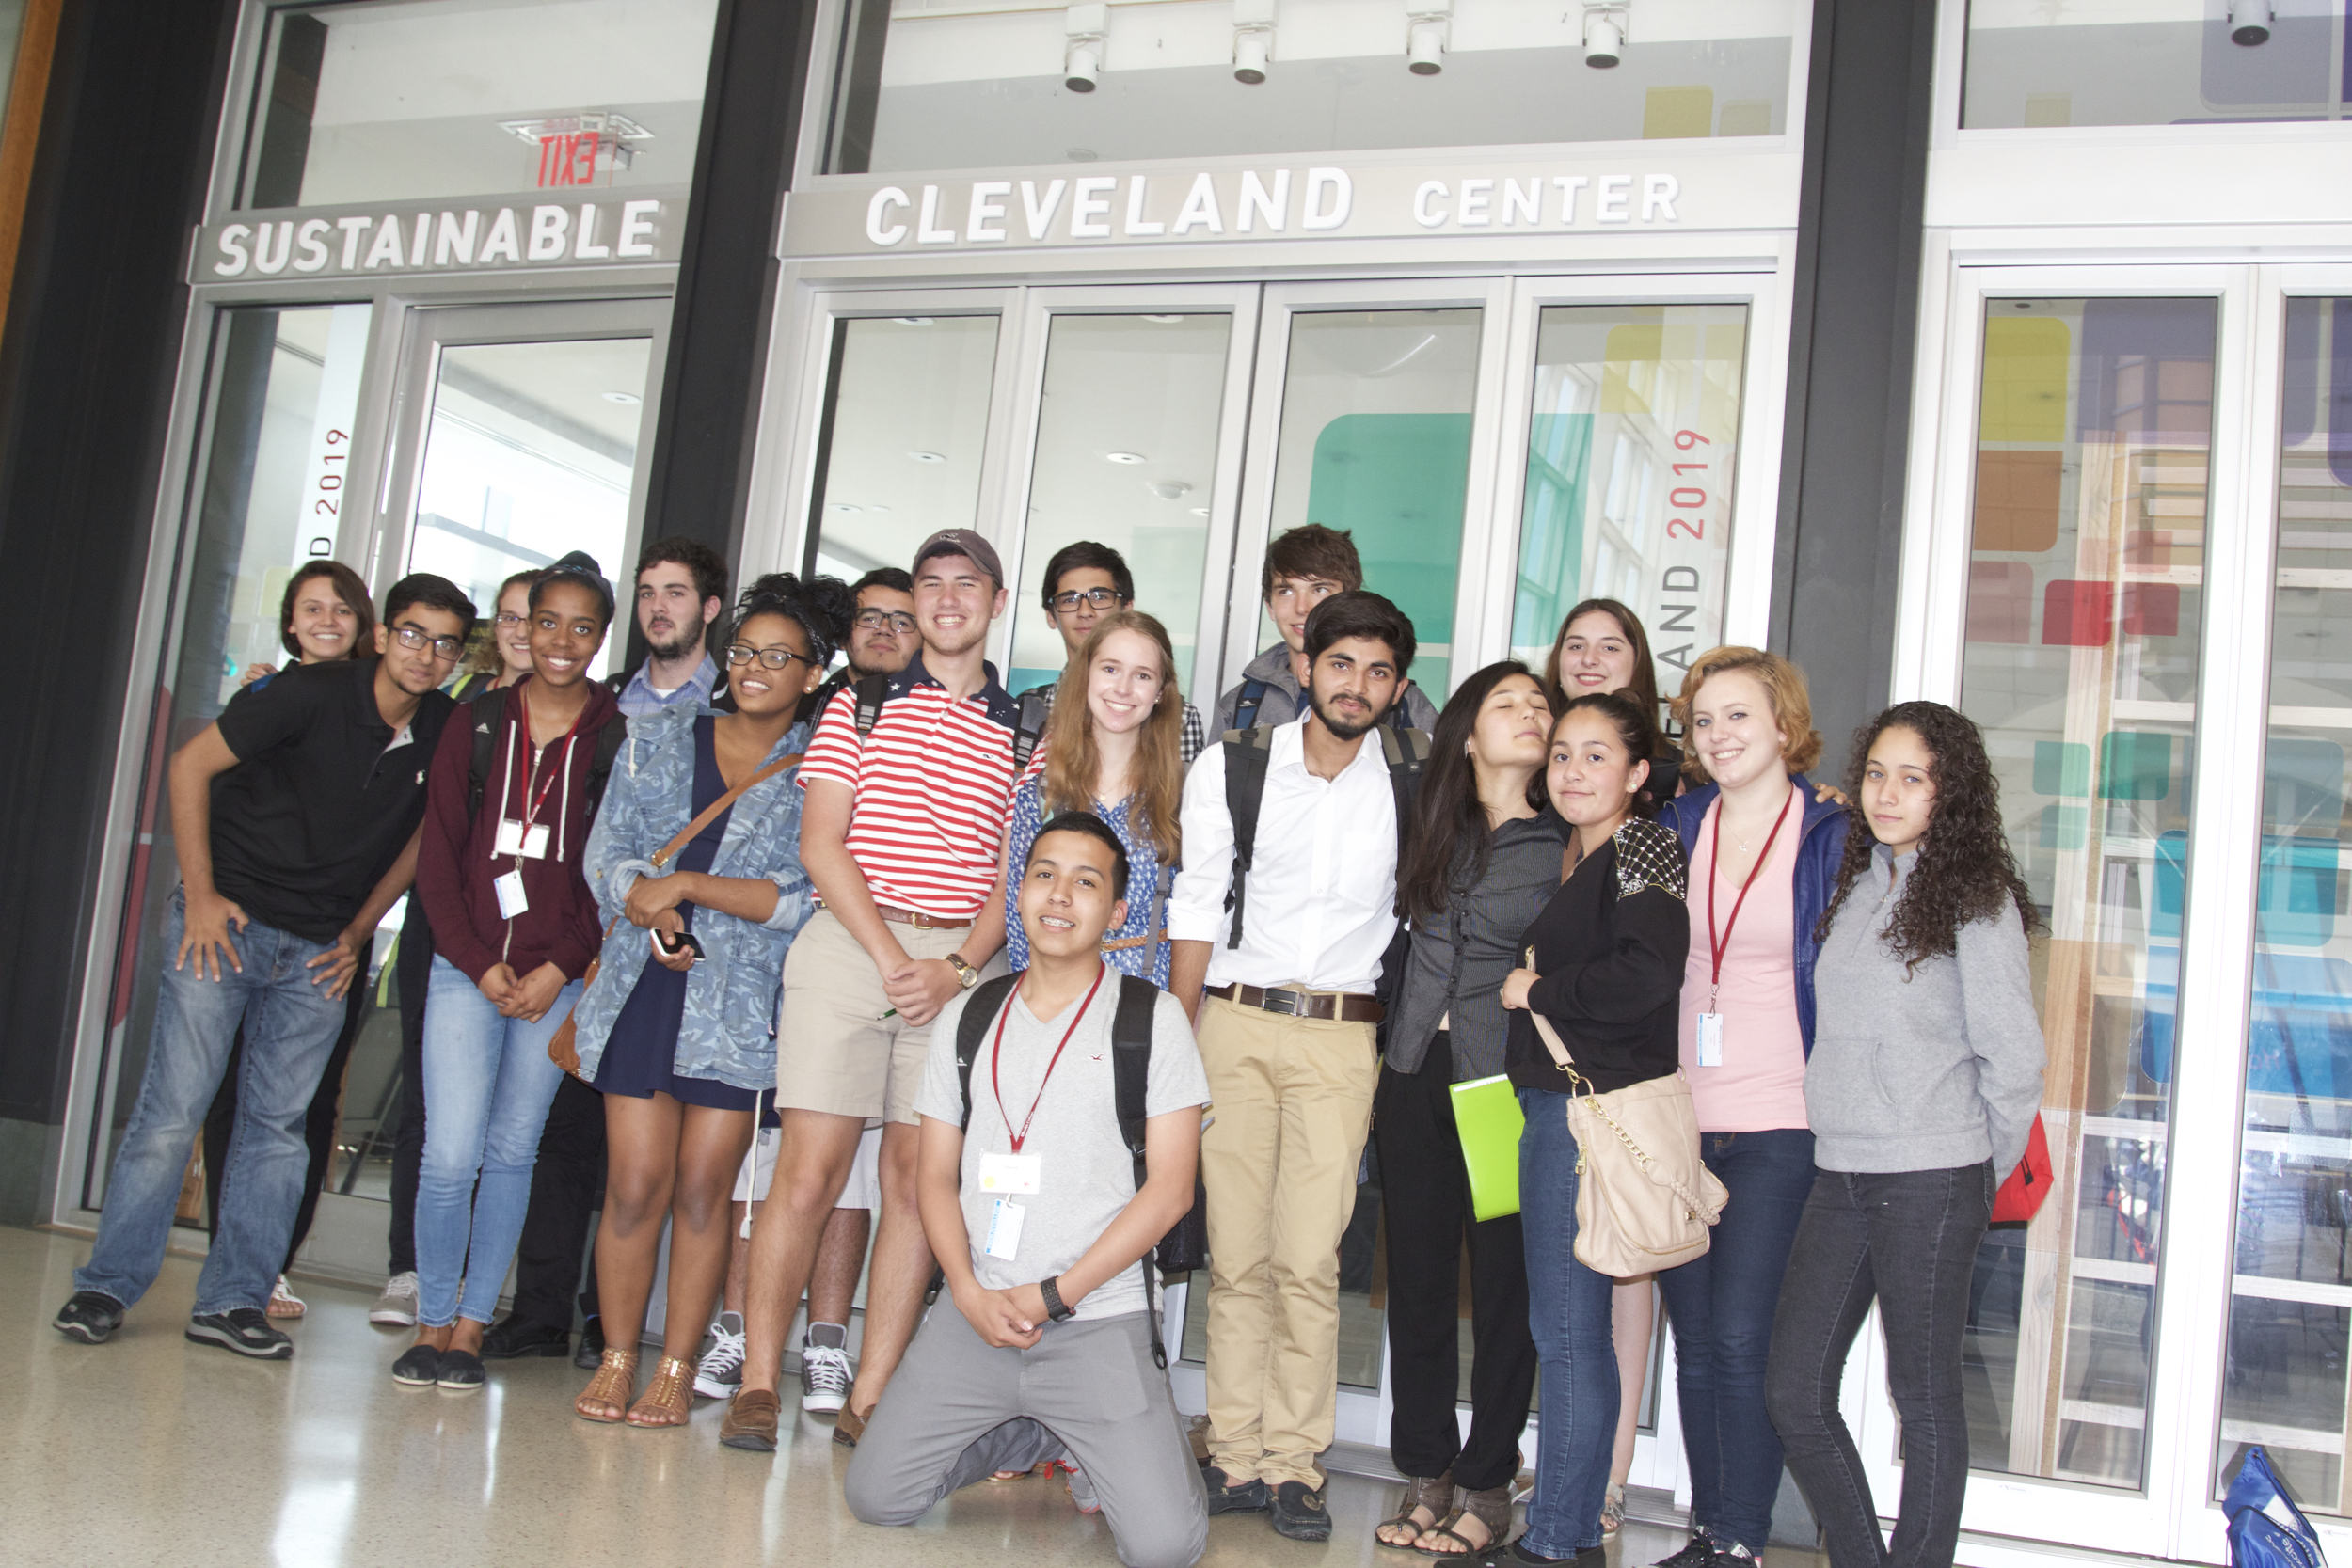 Future of Business '15 students visit the Sustainable Cleveland Center at Tower City